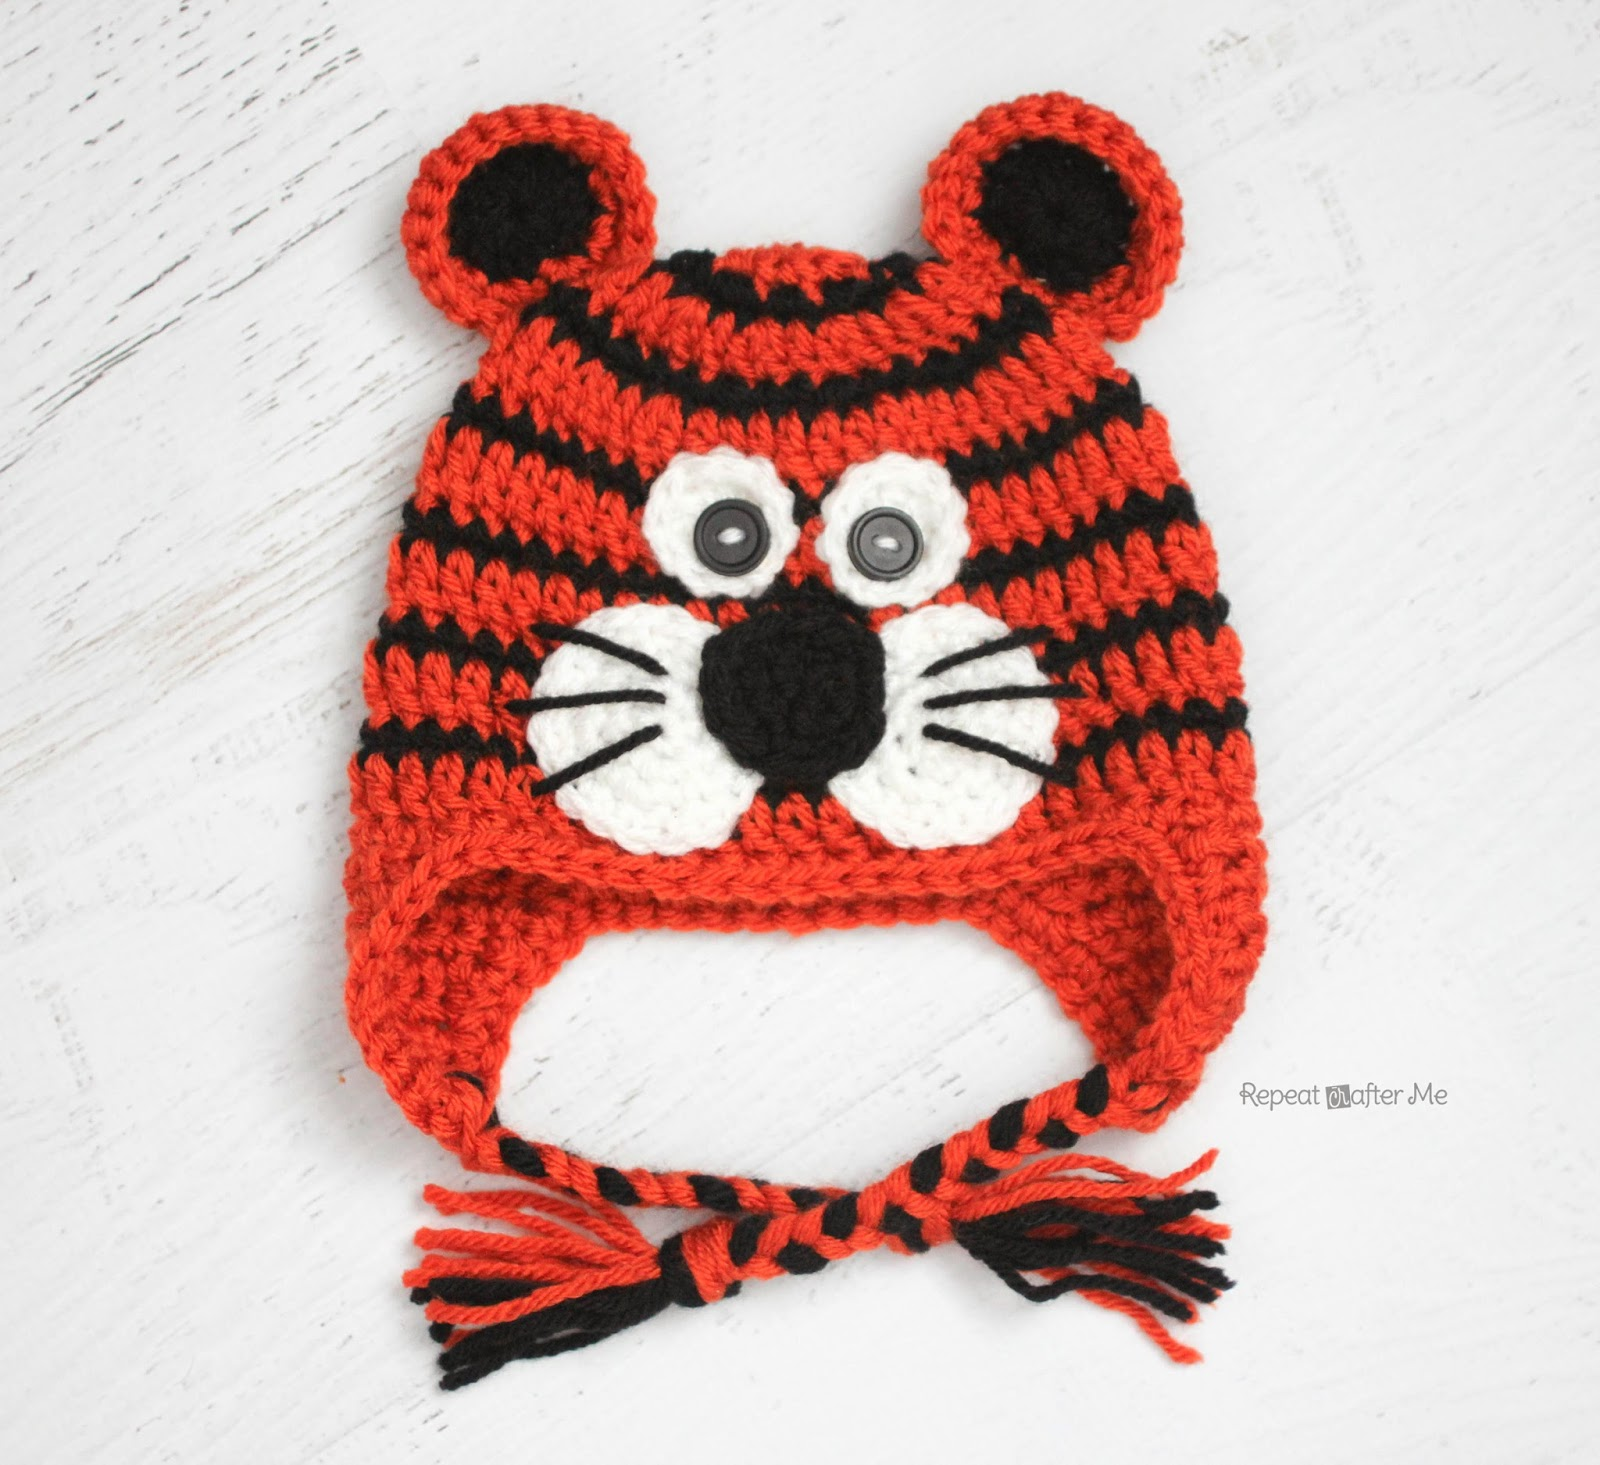 Free Crochet Patterns For Baby Halloween Hats : Hopeful Honey Craft, Crochet, Create: 10 Free Halloween ...